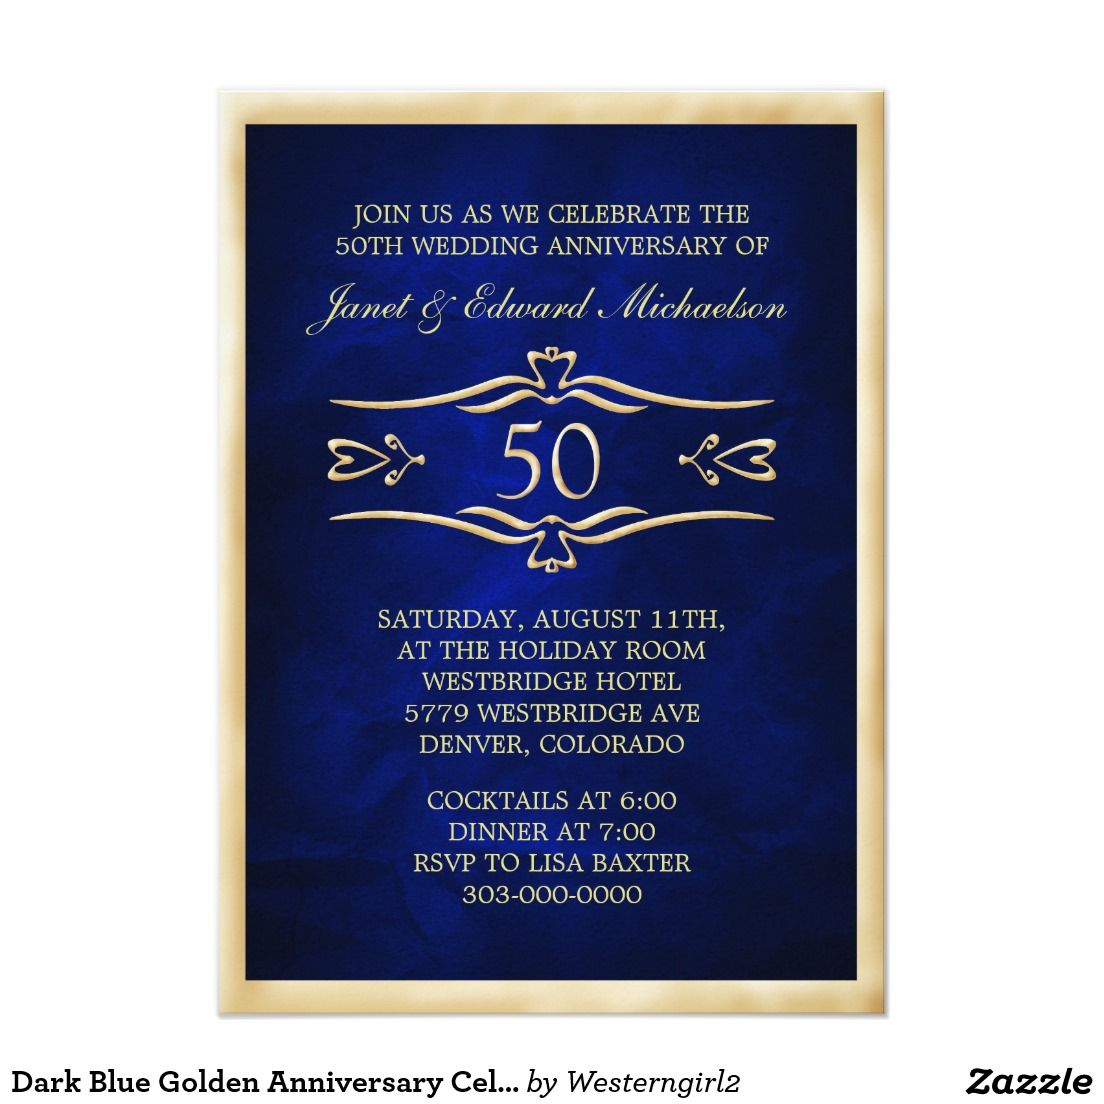 Dark Blue Golden Anniversary Celebration Invite All Shop Sales